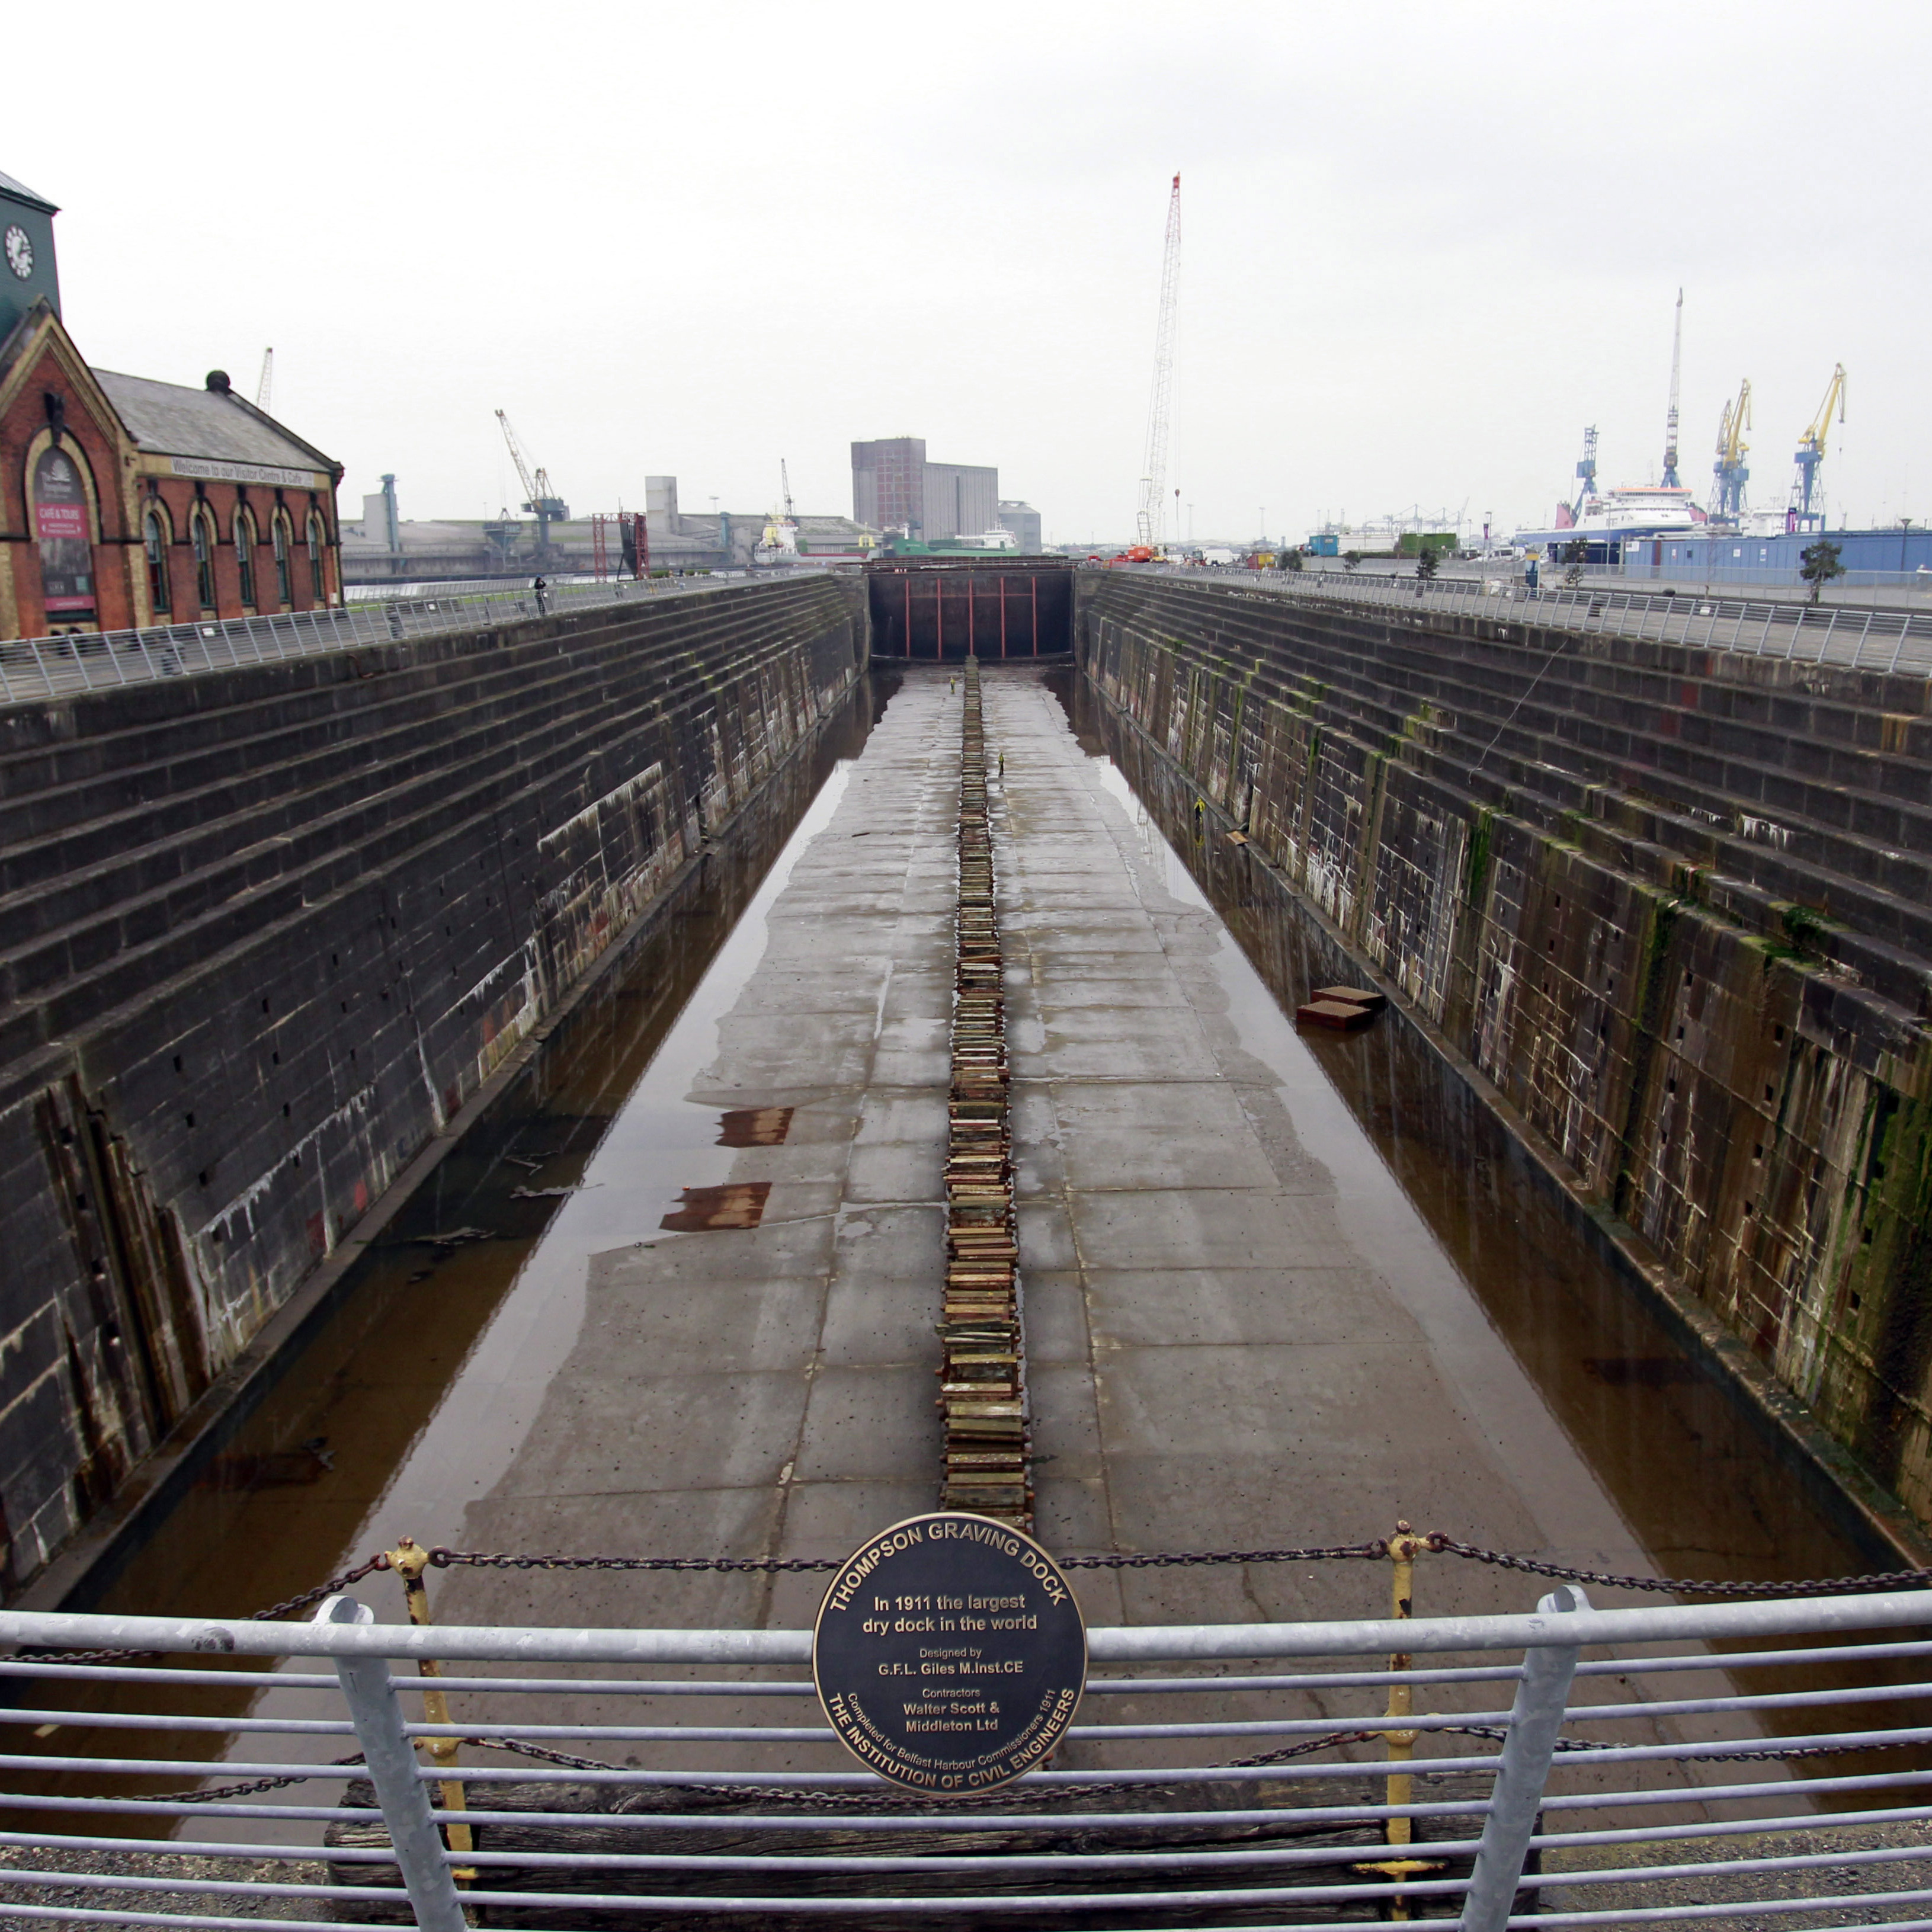 The Titanic was finished in the Thompson Dry Dock on the Belfast waterfront in 1912.